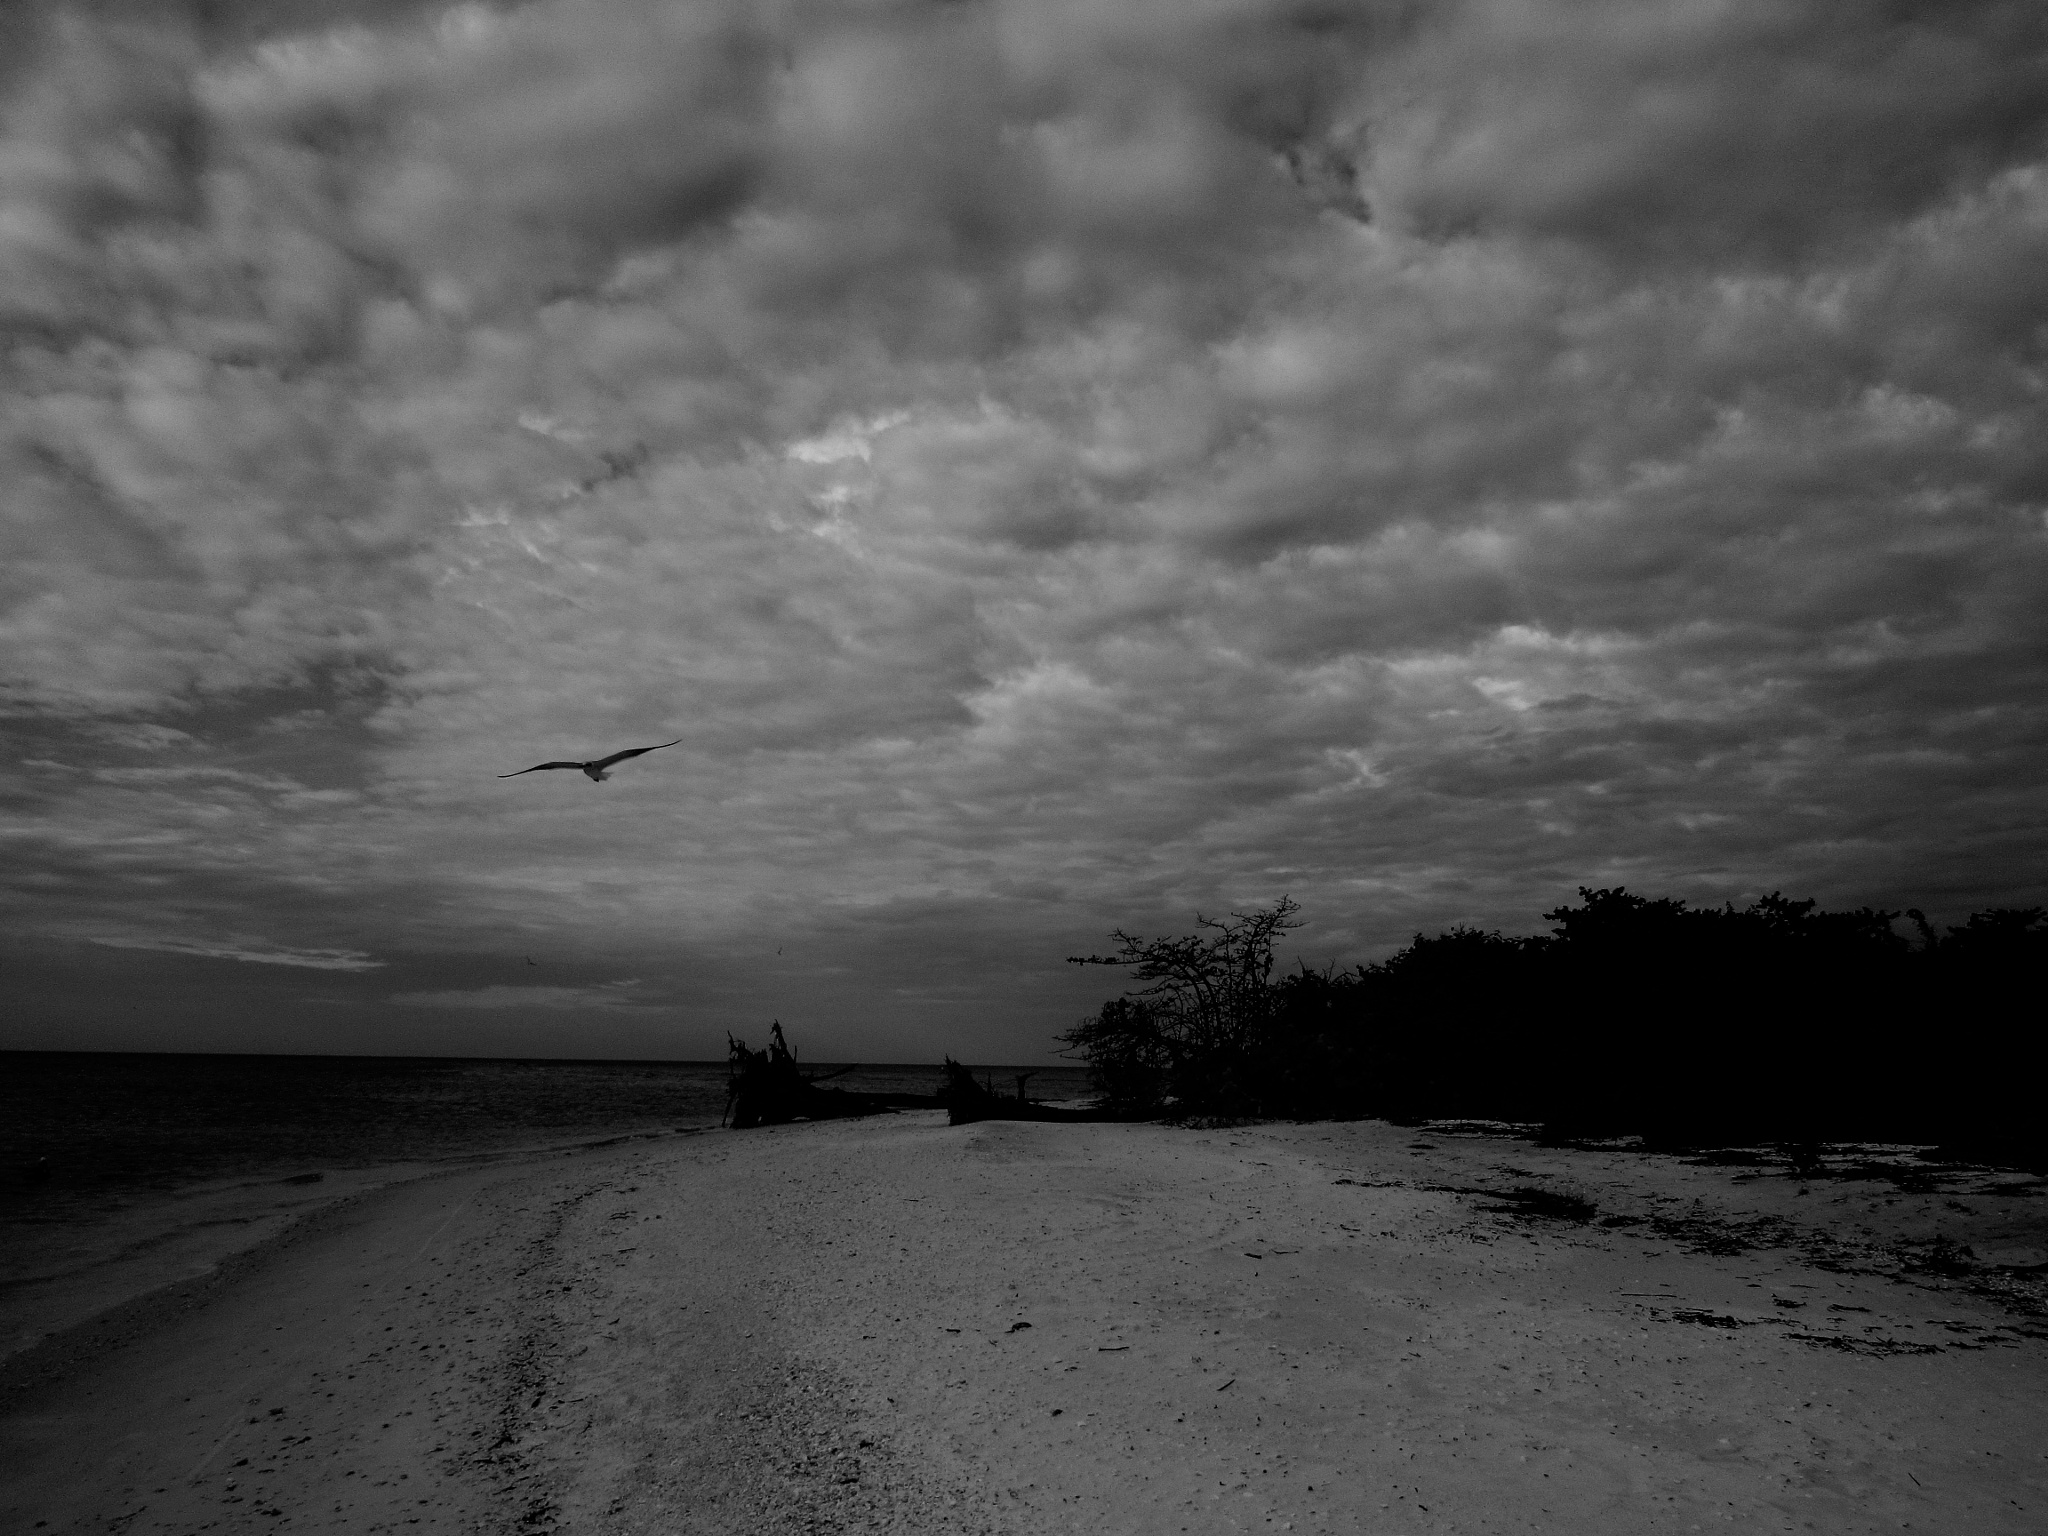 Monochrome Seagull by Todd